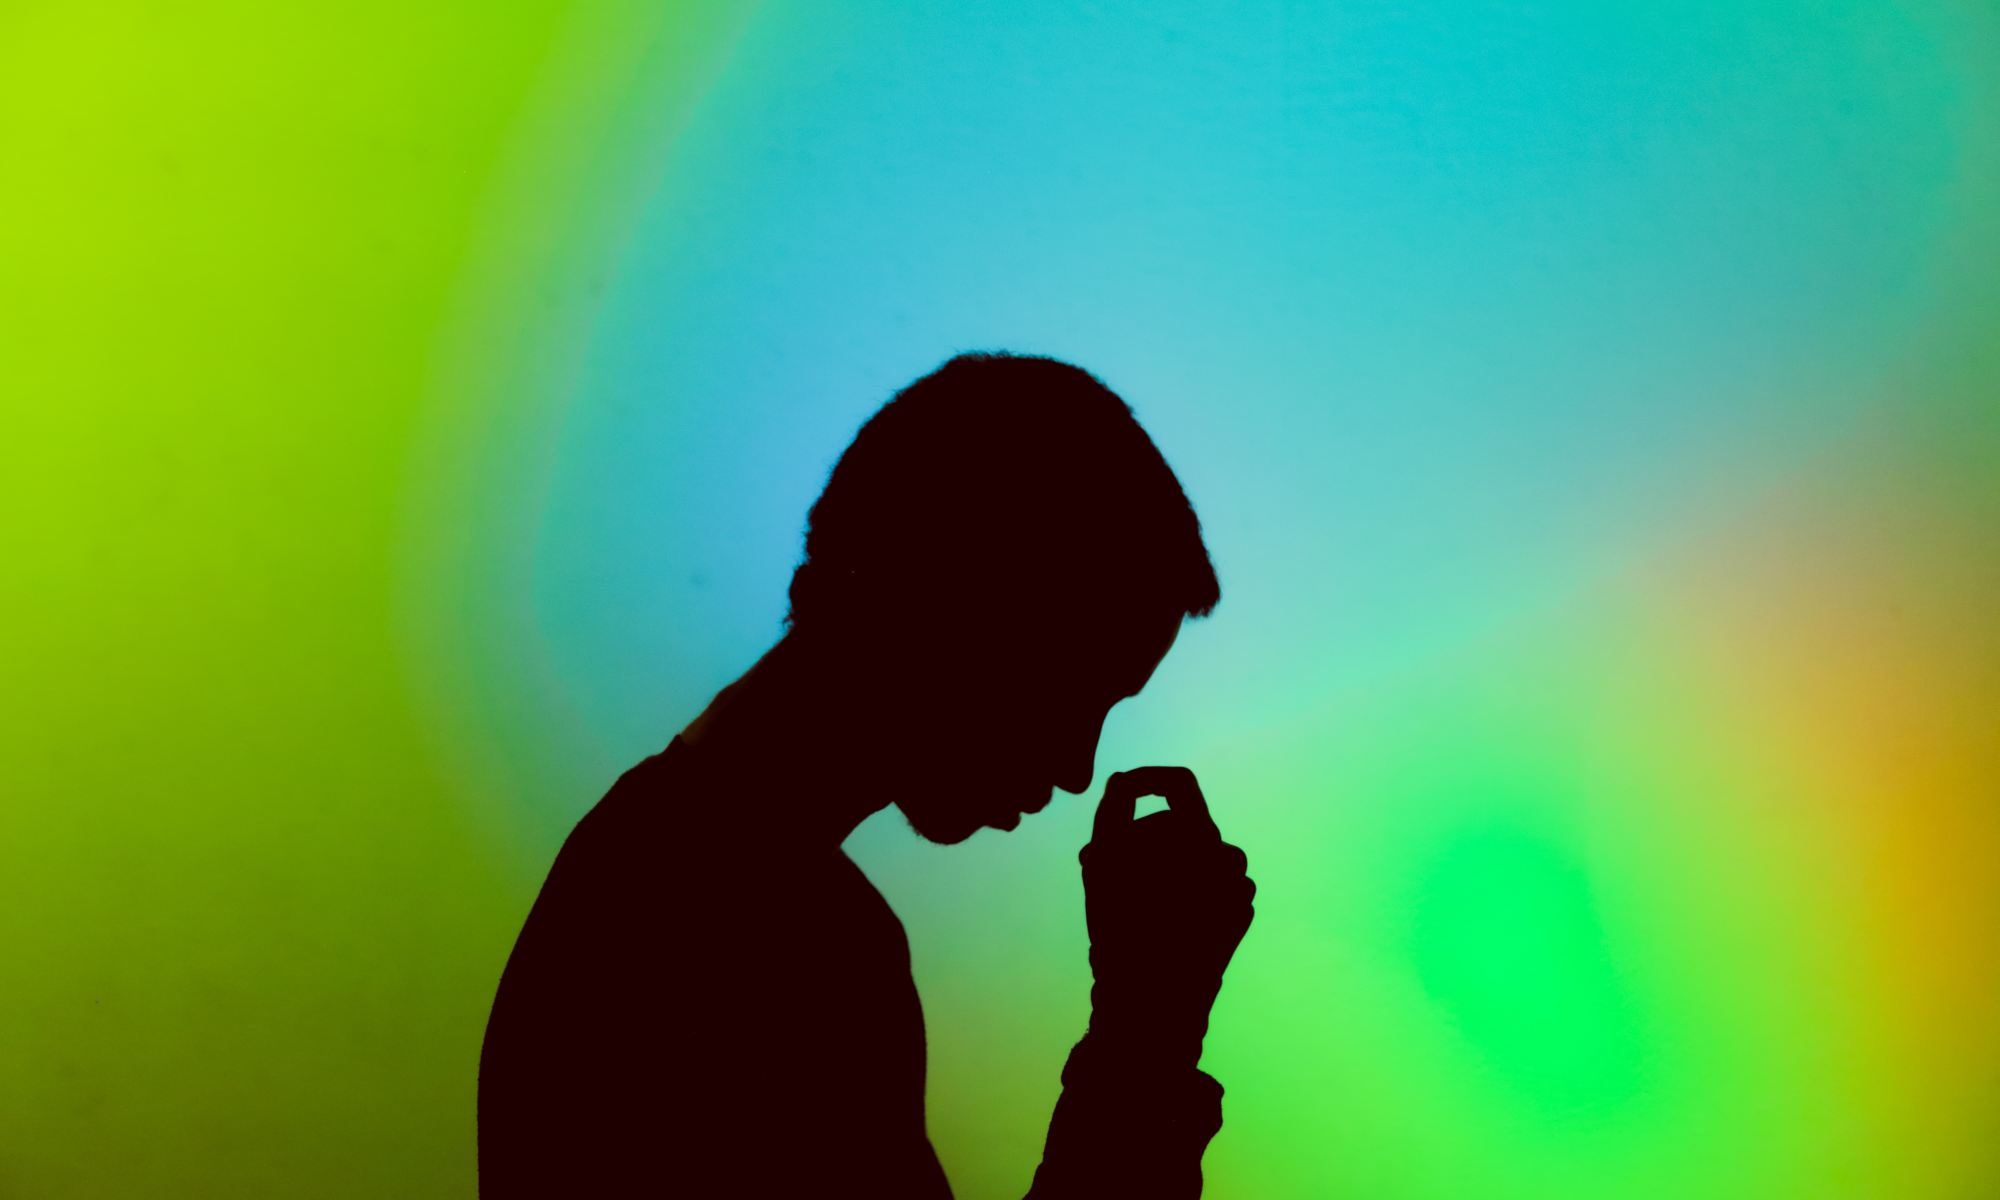 Silhouette photography of man experiencing an emotional void